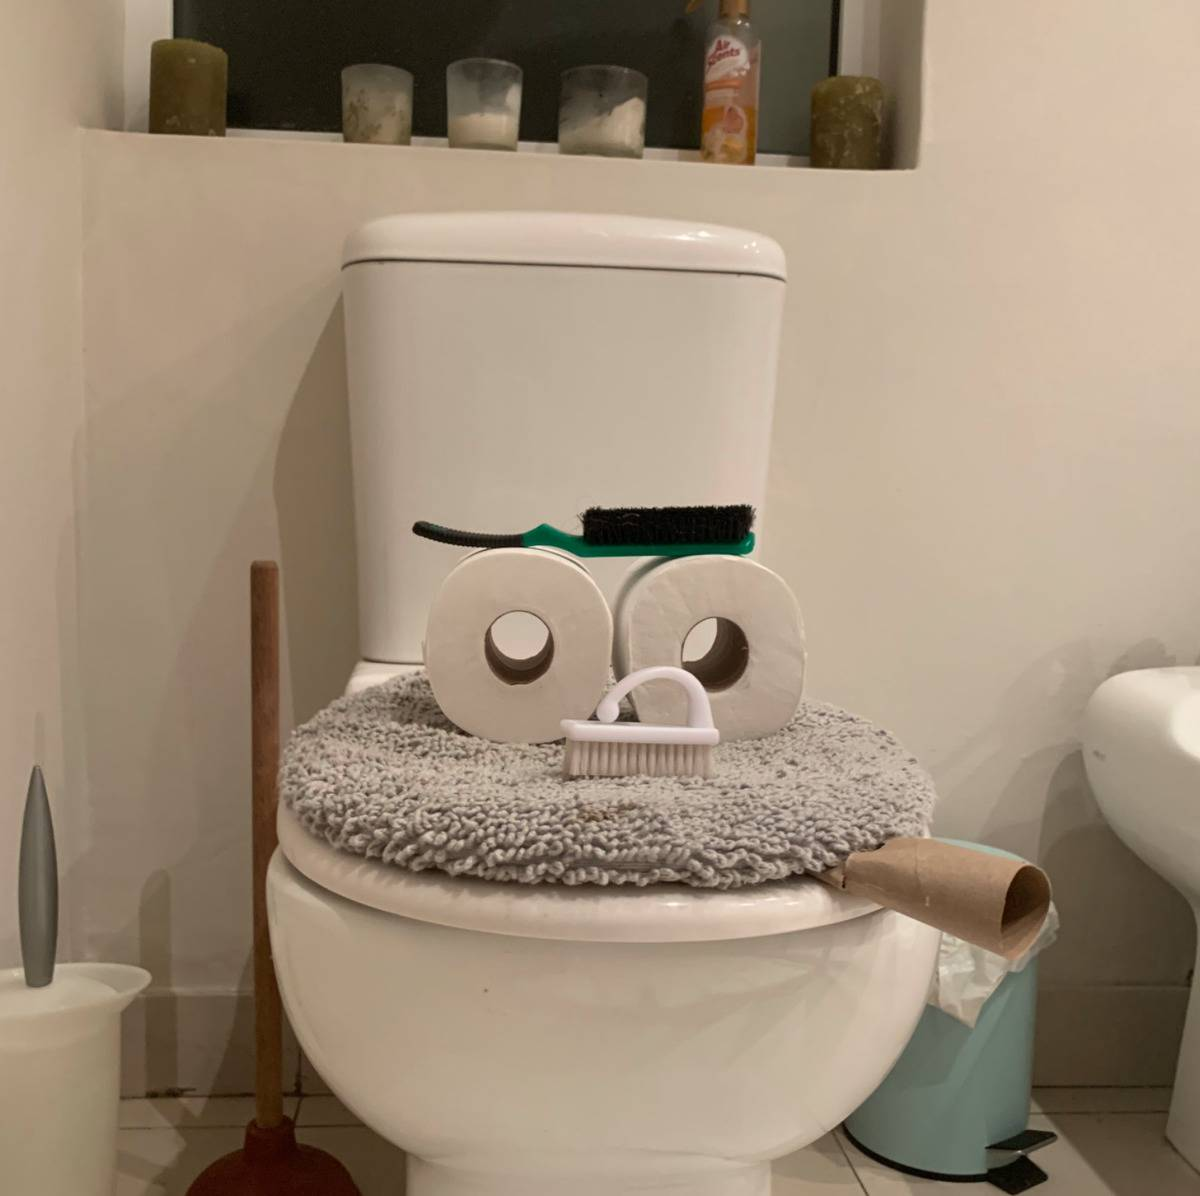 a kid made their toilet look like it was smoking